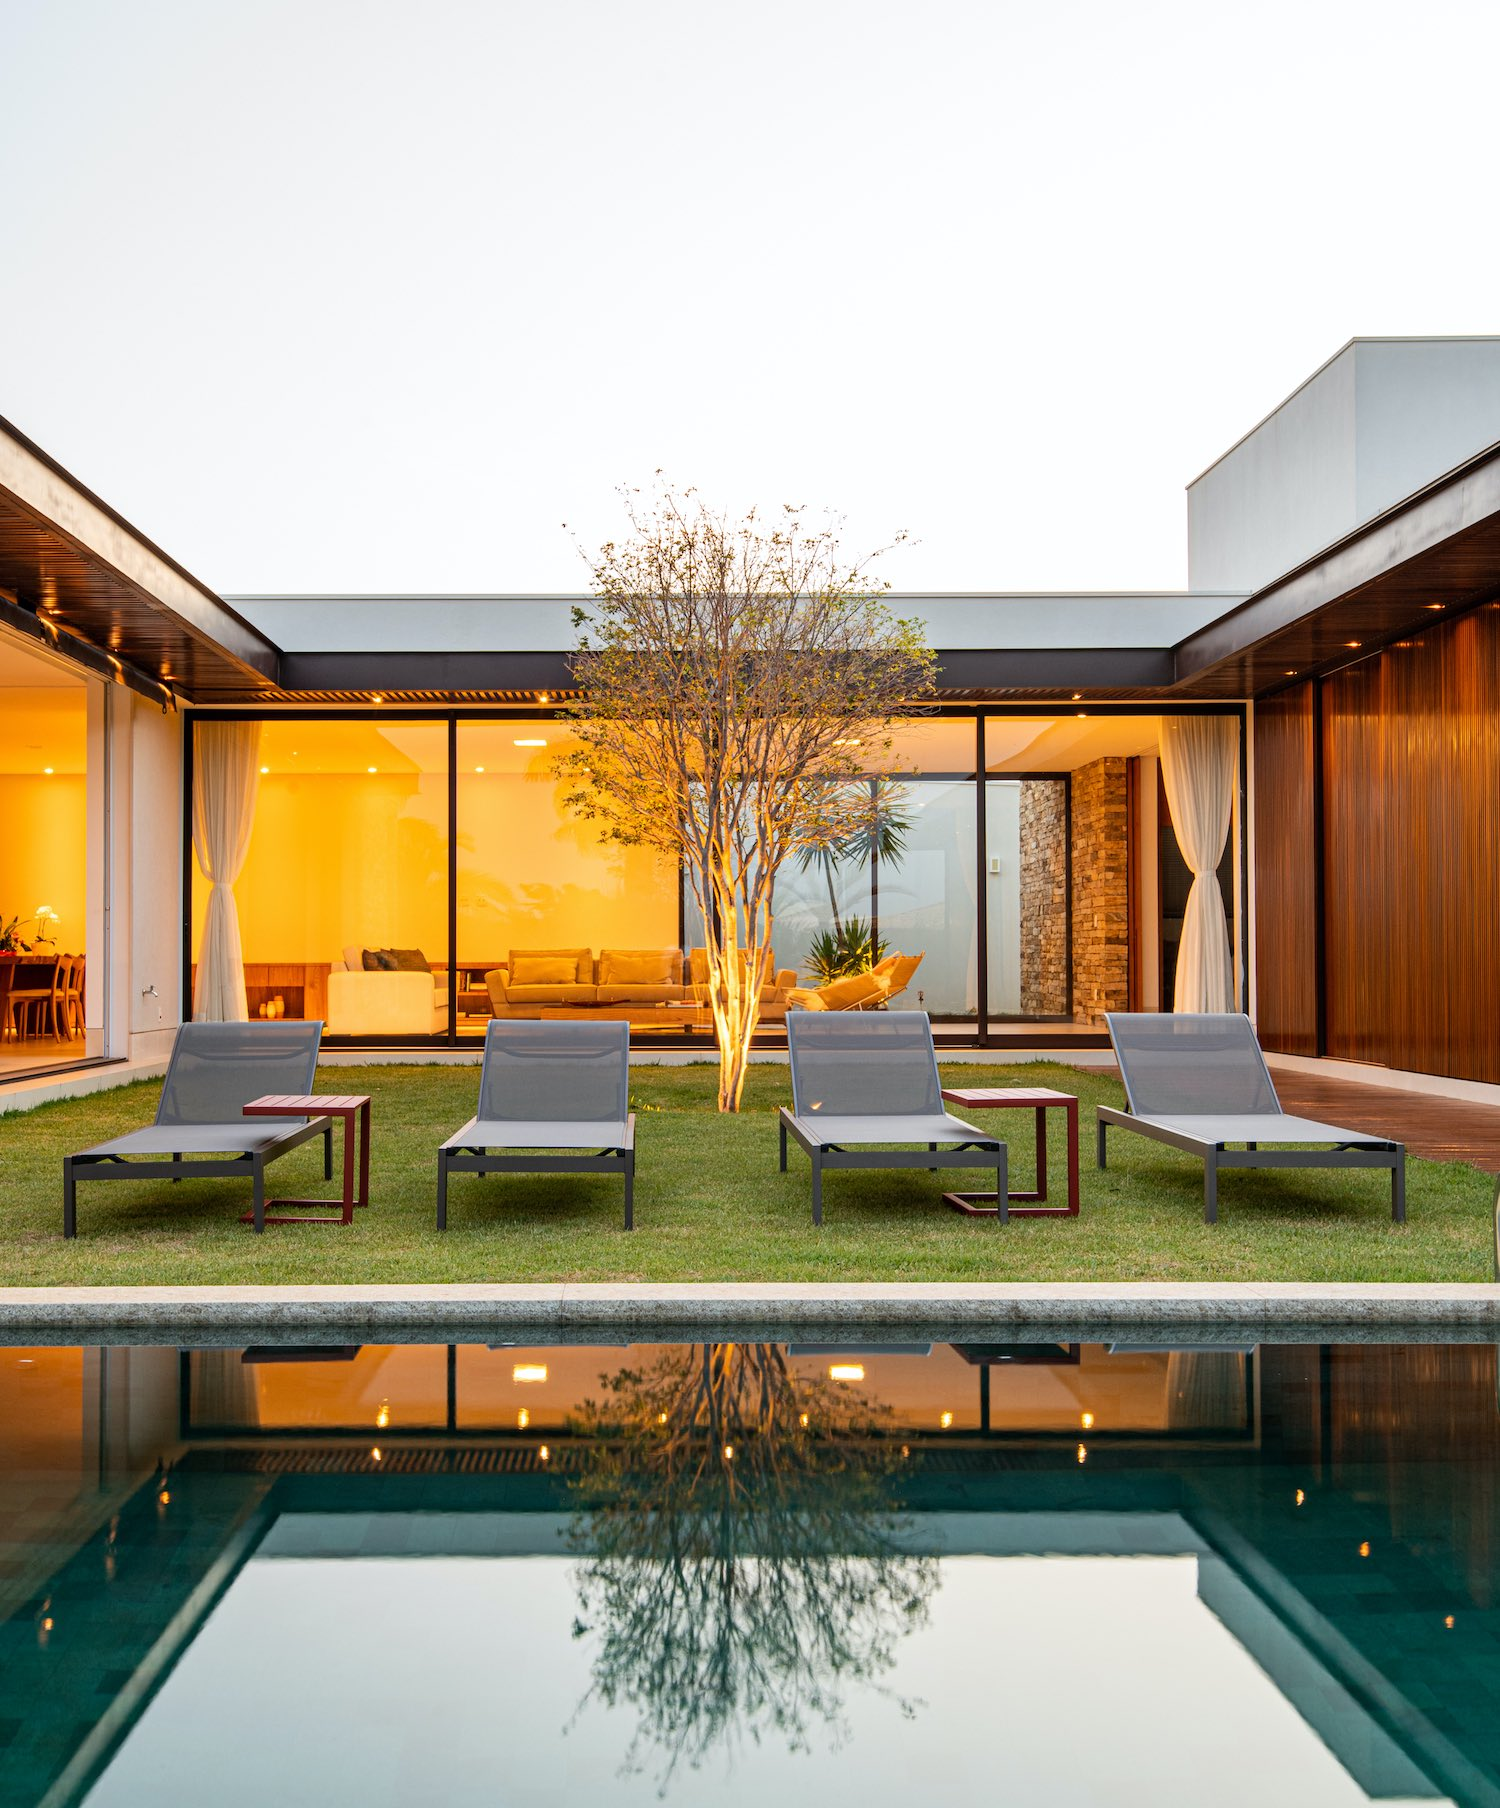 reflection of the tree and house in the pool